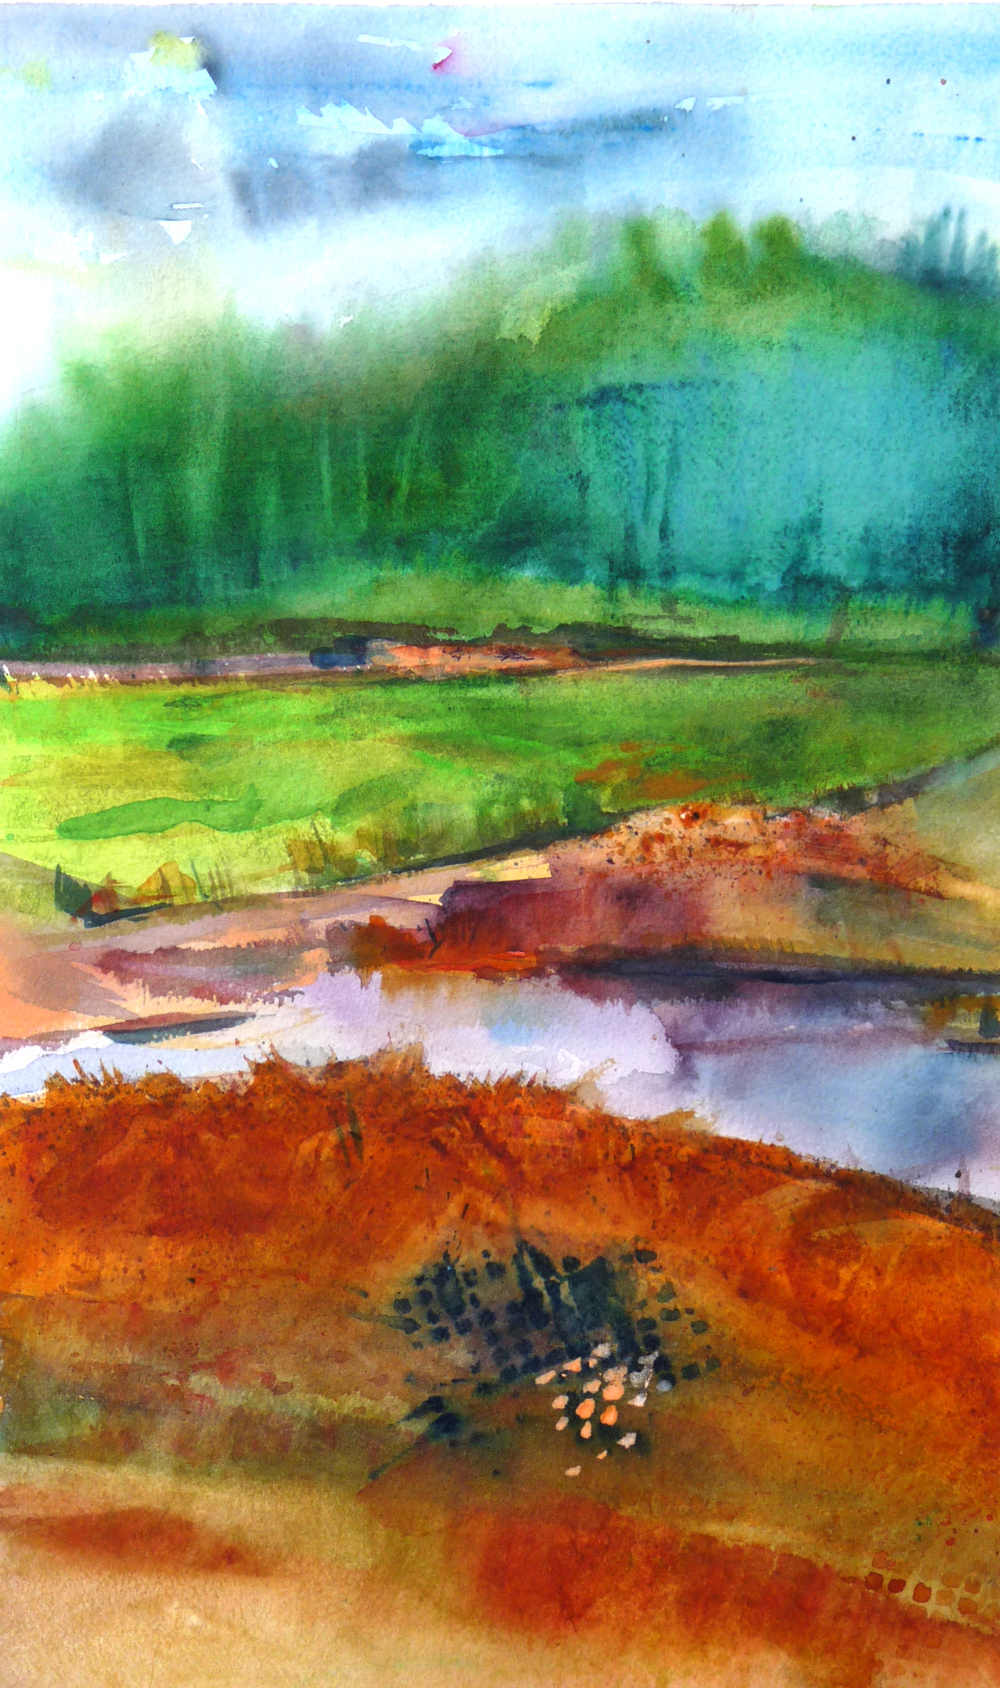 """OLD NASHVILLE CLAY PITS     9"""" X 14"""" —Watercolor on w/c paper, 17"""" x 21"""" framed    $600.00"""